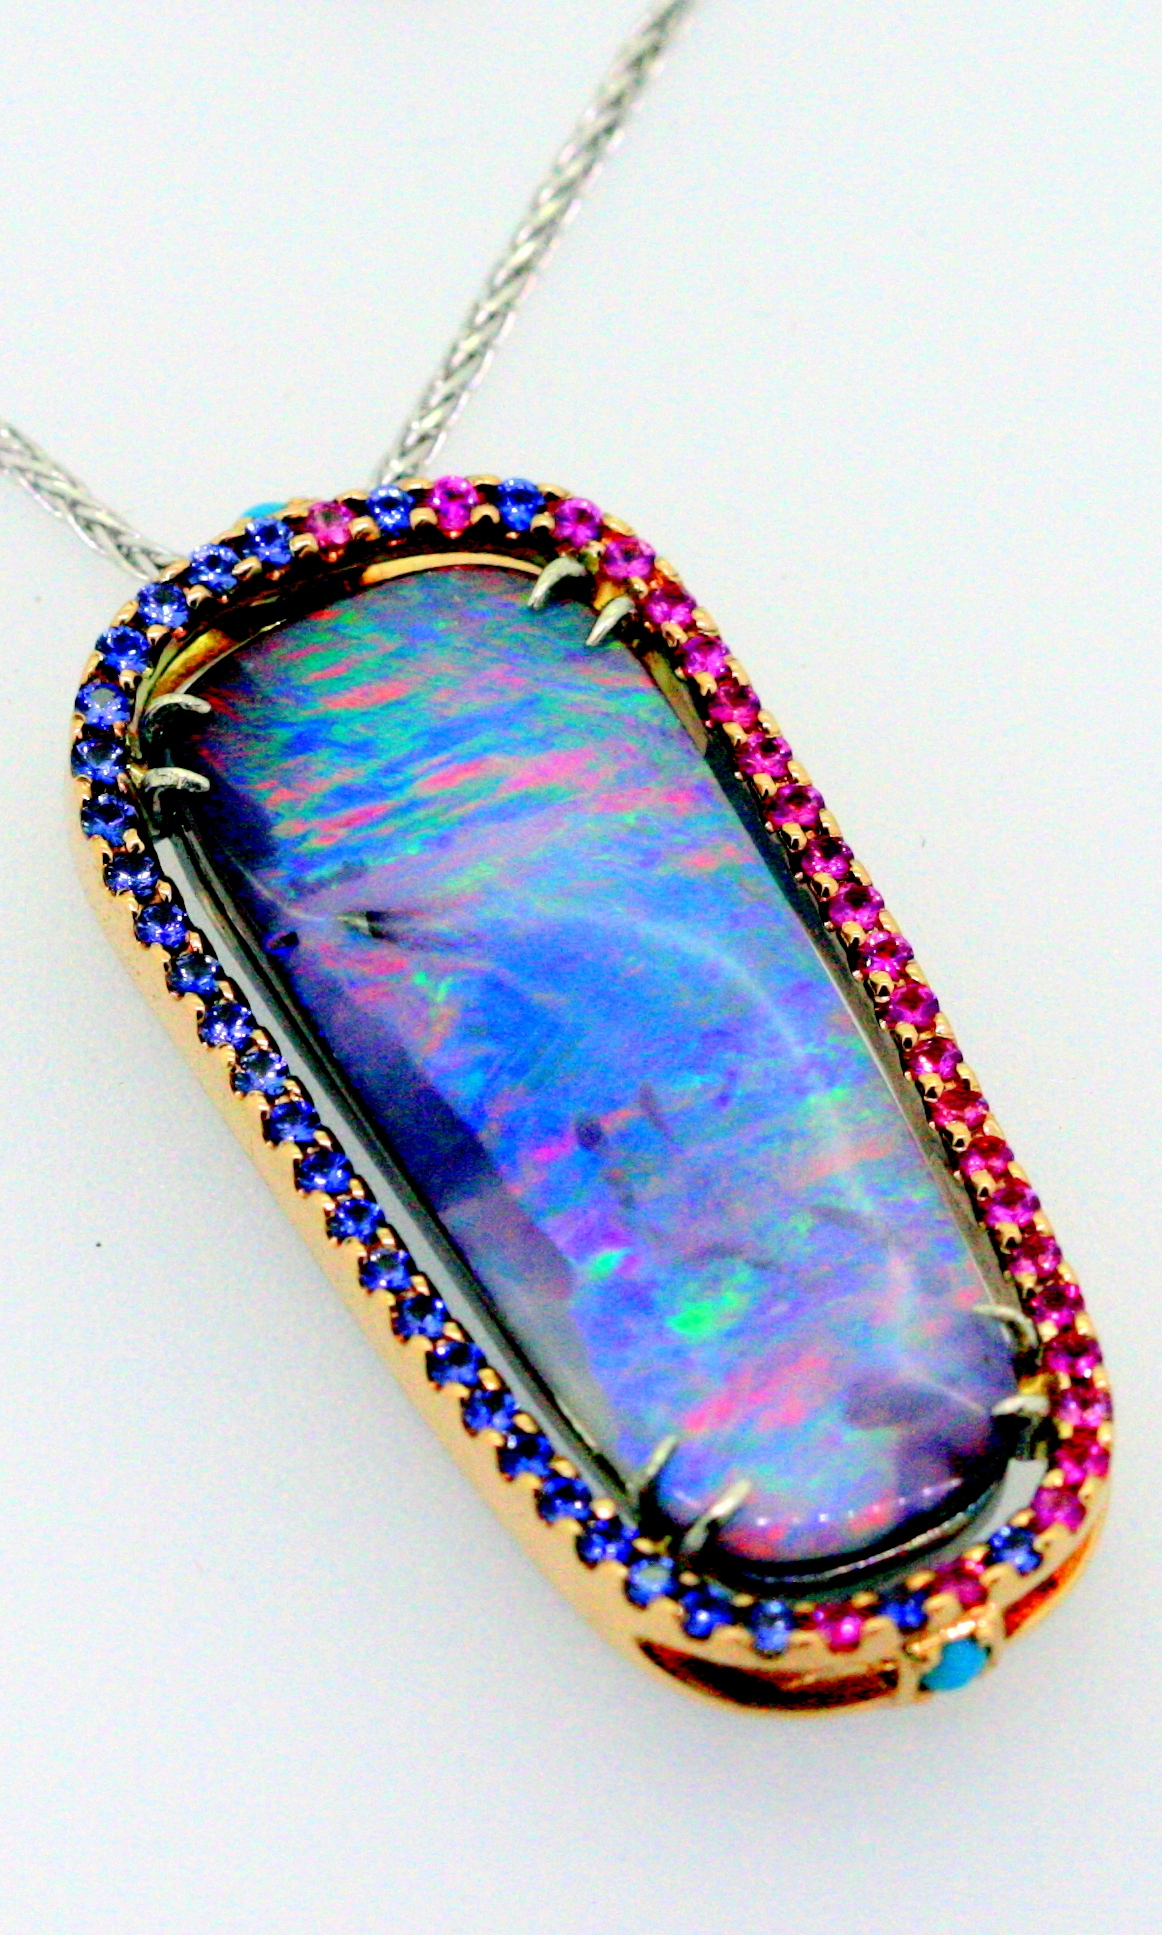 Opal_sapphire_pendant cropped and small.jpg